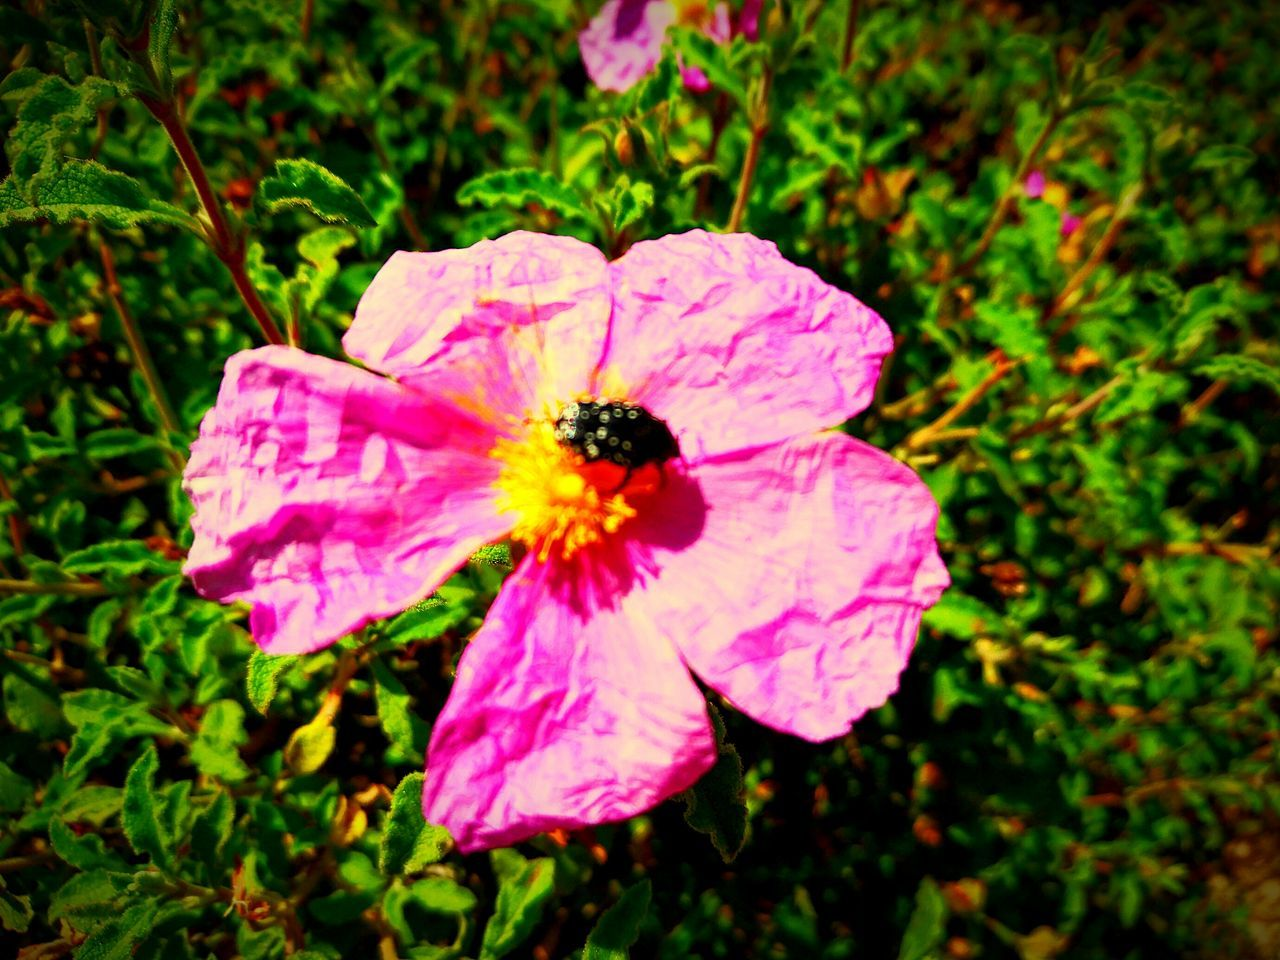 Taking Photos Check This Out Natures Diversities Enjoying Life Natural Beauty Naturelovers Nature Nature_collection EyeEm Nature Lover Nature Photography EyeEm Gallery EyeEm Best Shots - Nature Eyeemphotography Naturesdiversities EyeEm Best Shots Flower Flower Collection Bug On A Flower The Great Outdoors - 2016 EyeEm AwardsBugslife Flowers_collection Flowerlovers Flower And Insect Insect Insect On A Flower